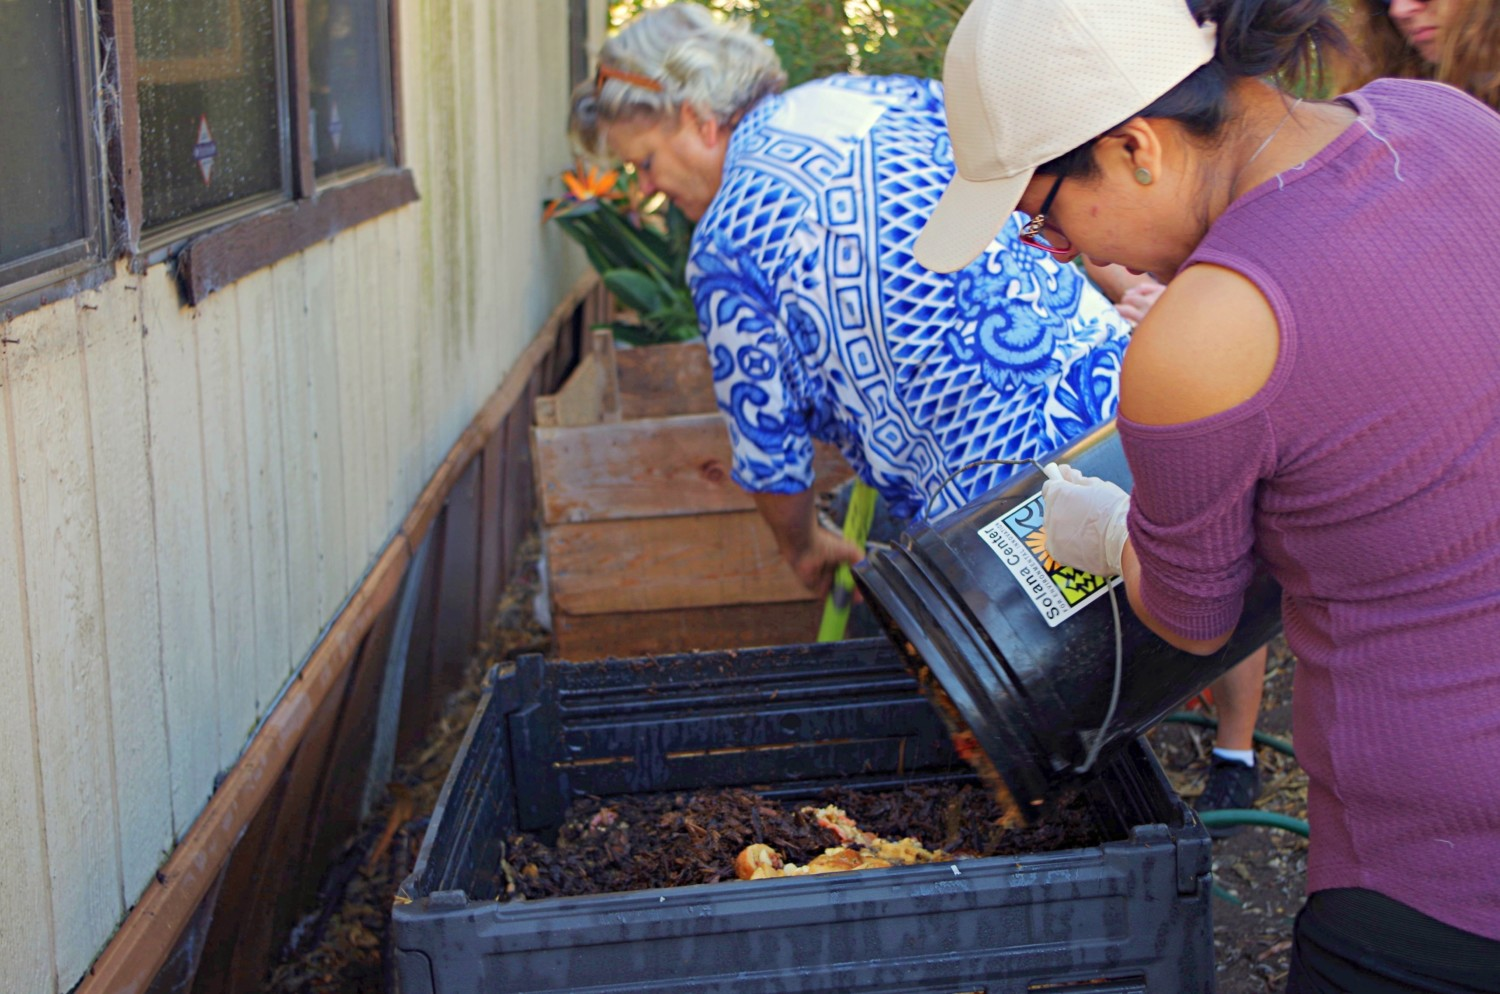 Solana Center for Environmental Innovation offers locals a place to recycle waste and produce organic soil